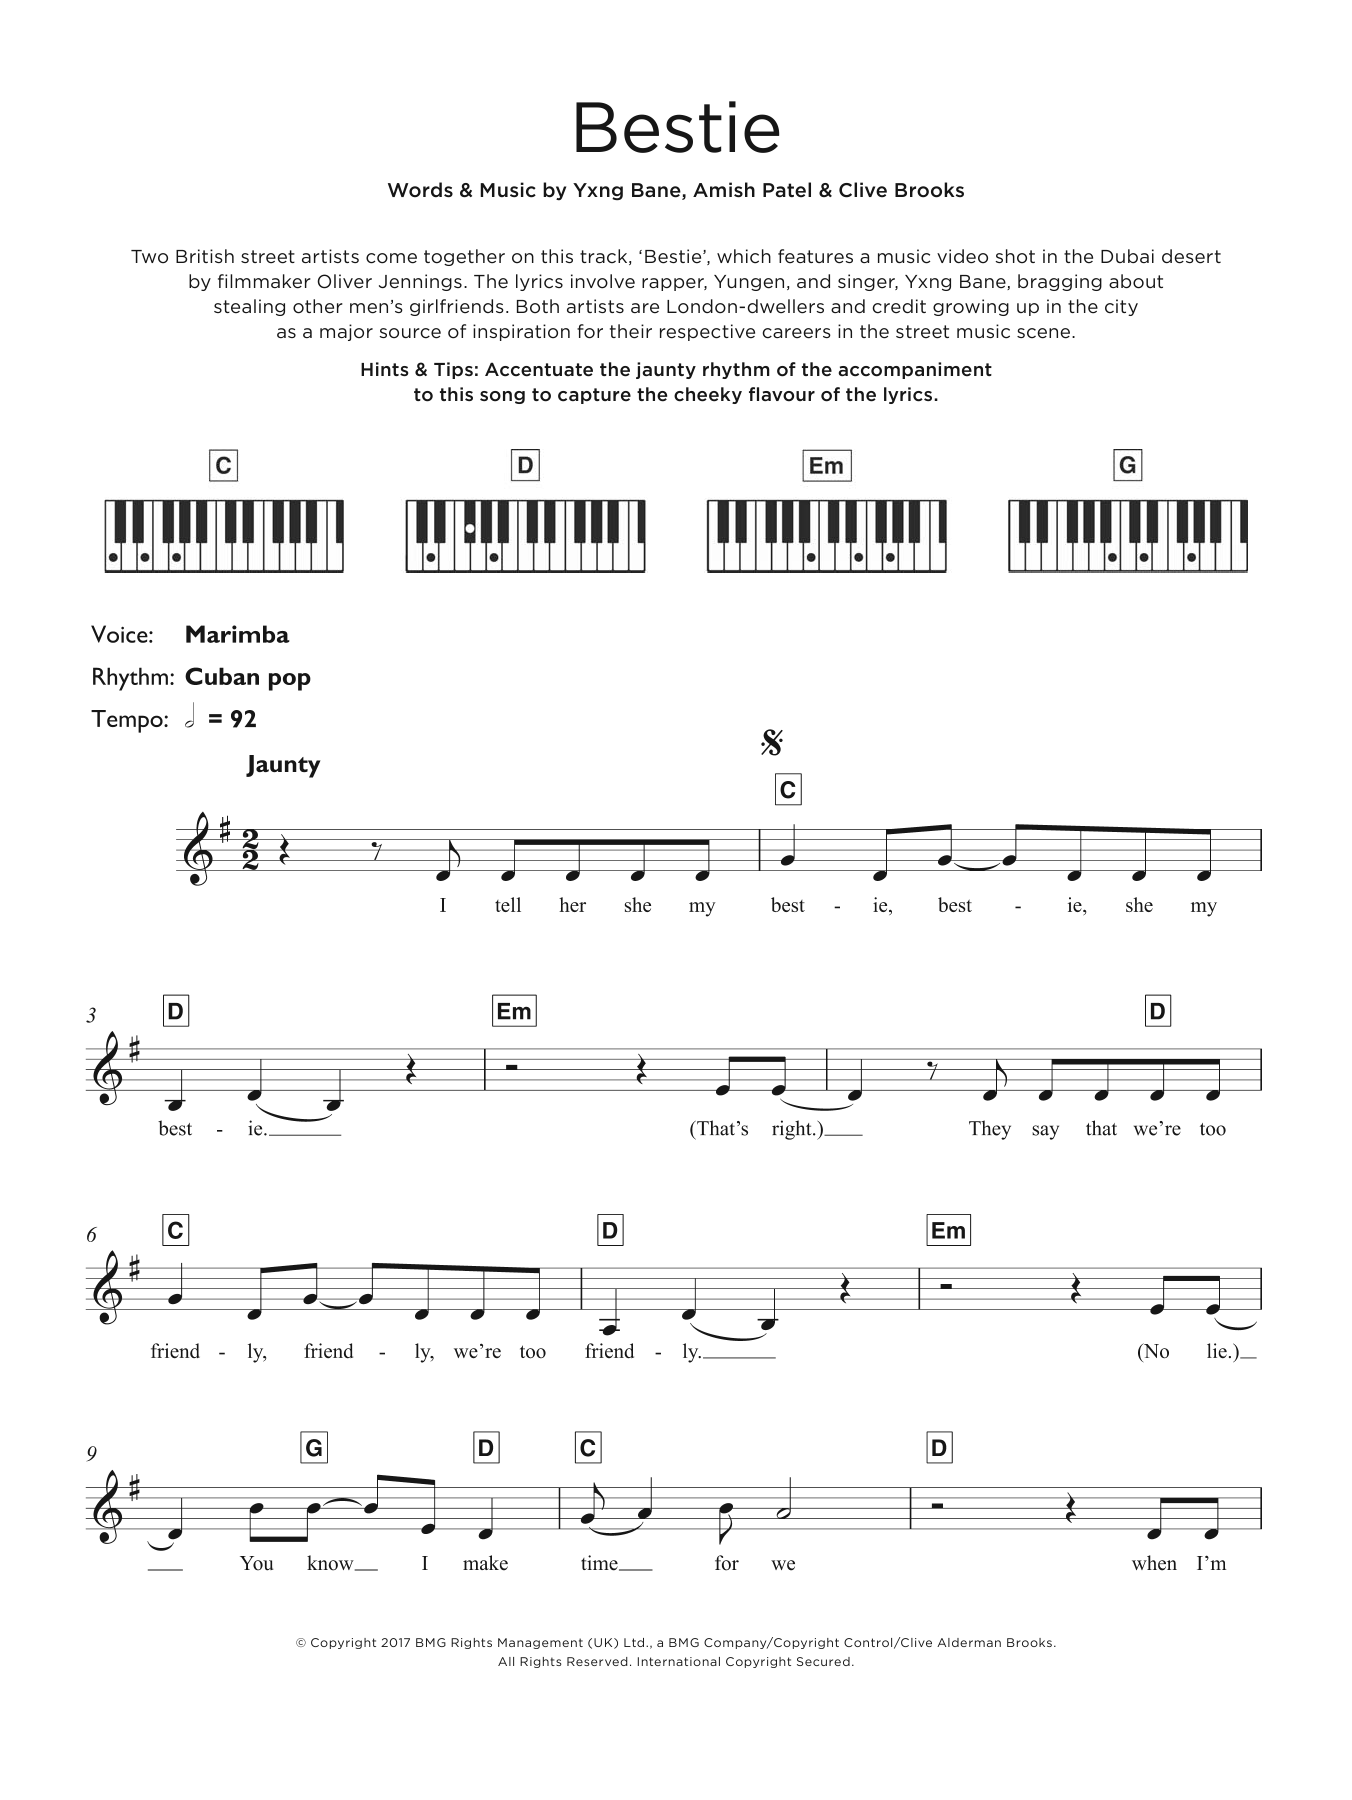 Bestie (feat. Yxng Bane) Sheet Music